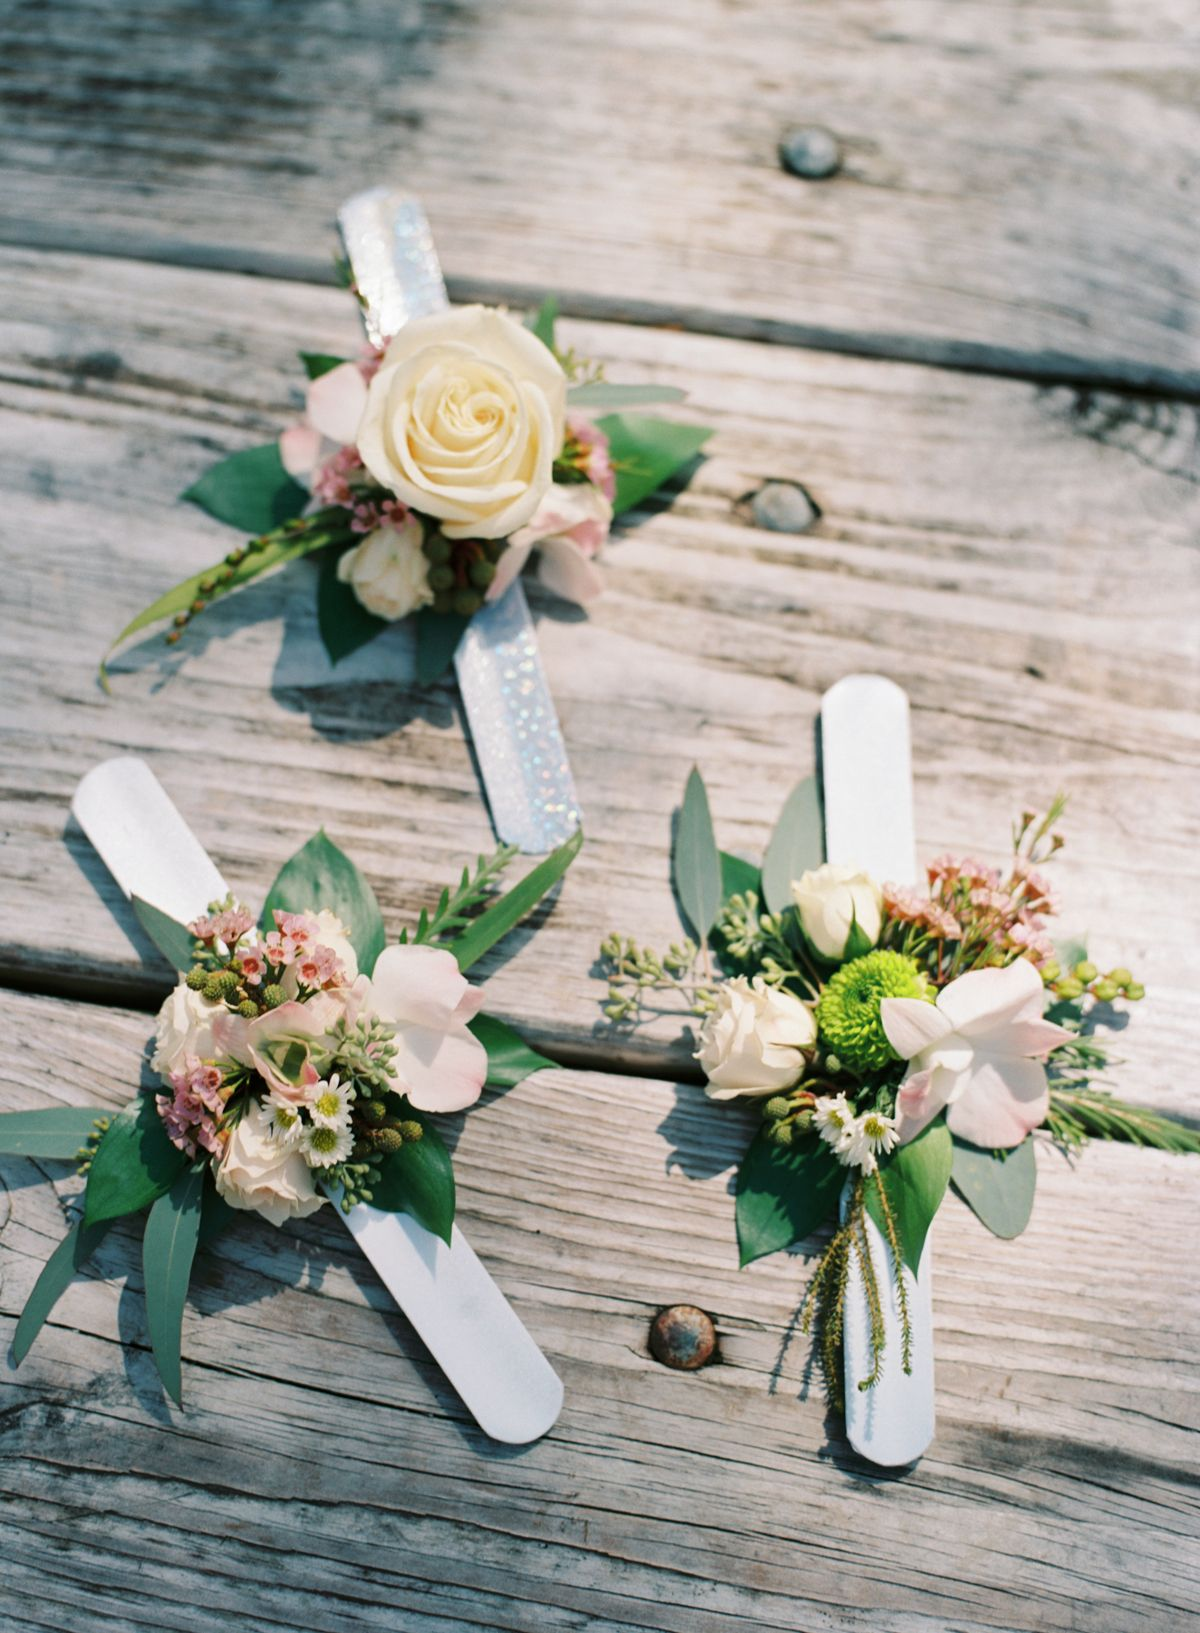 Slap Bracelet Corsages By Epic Arrangements Photo Katbraman